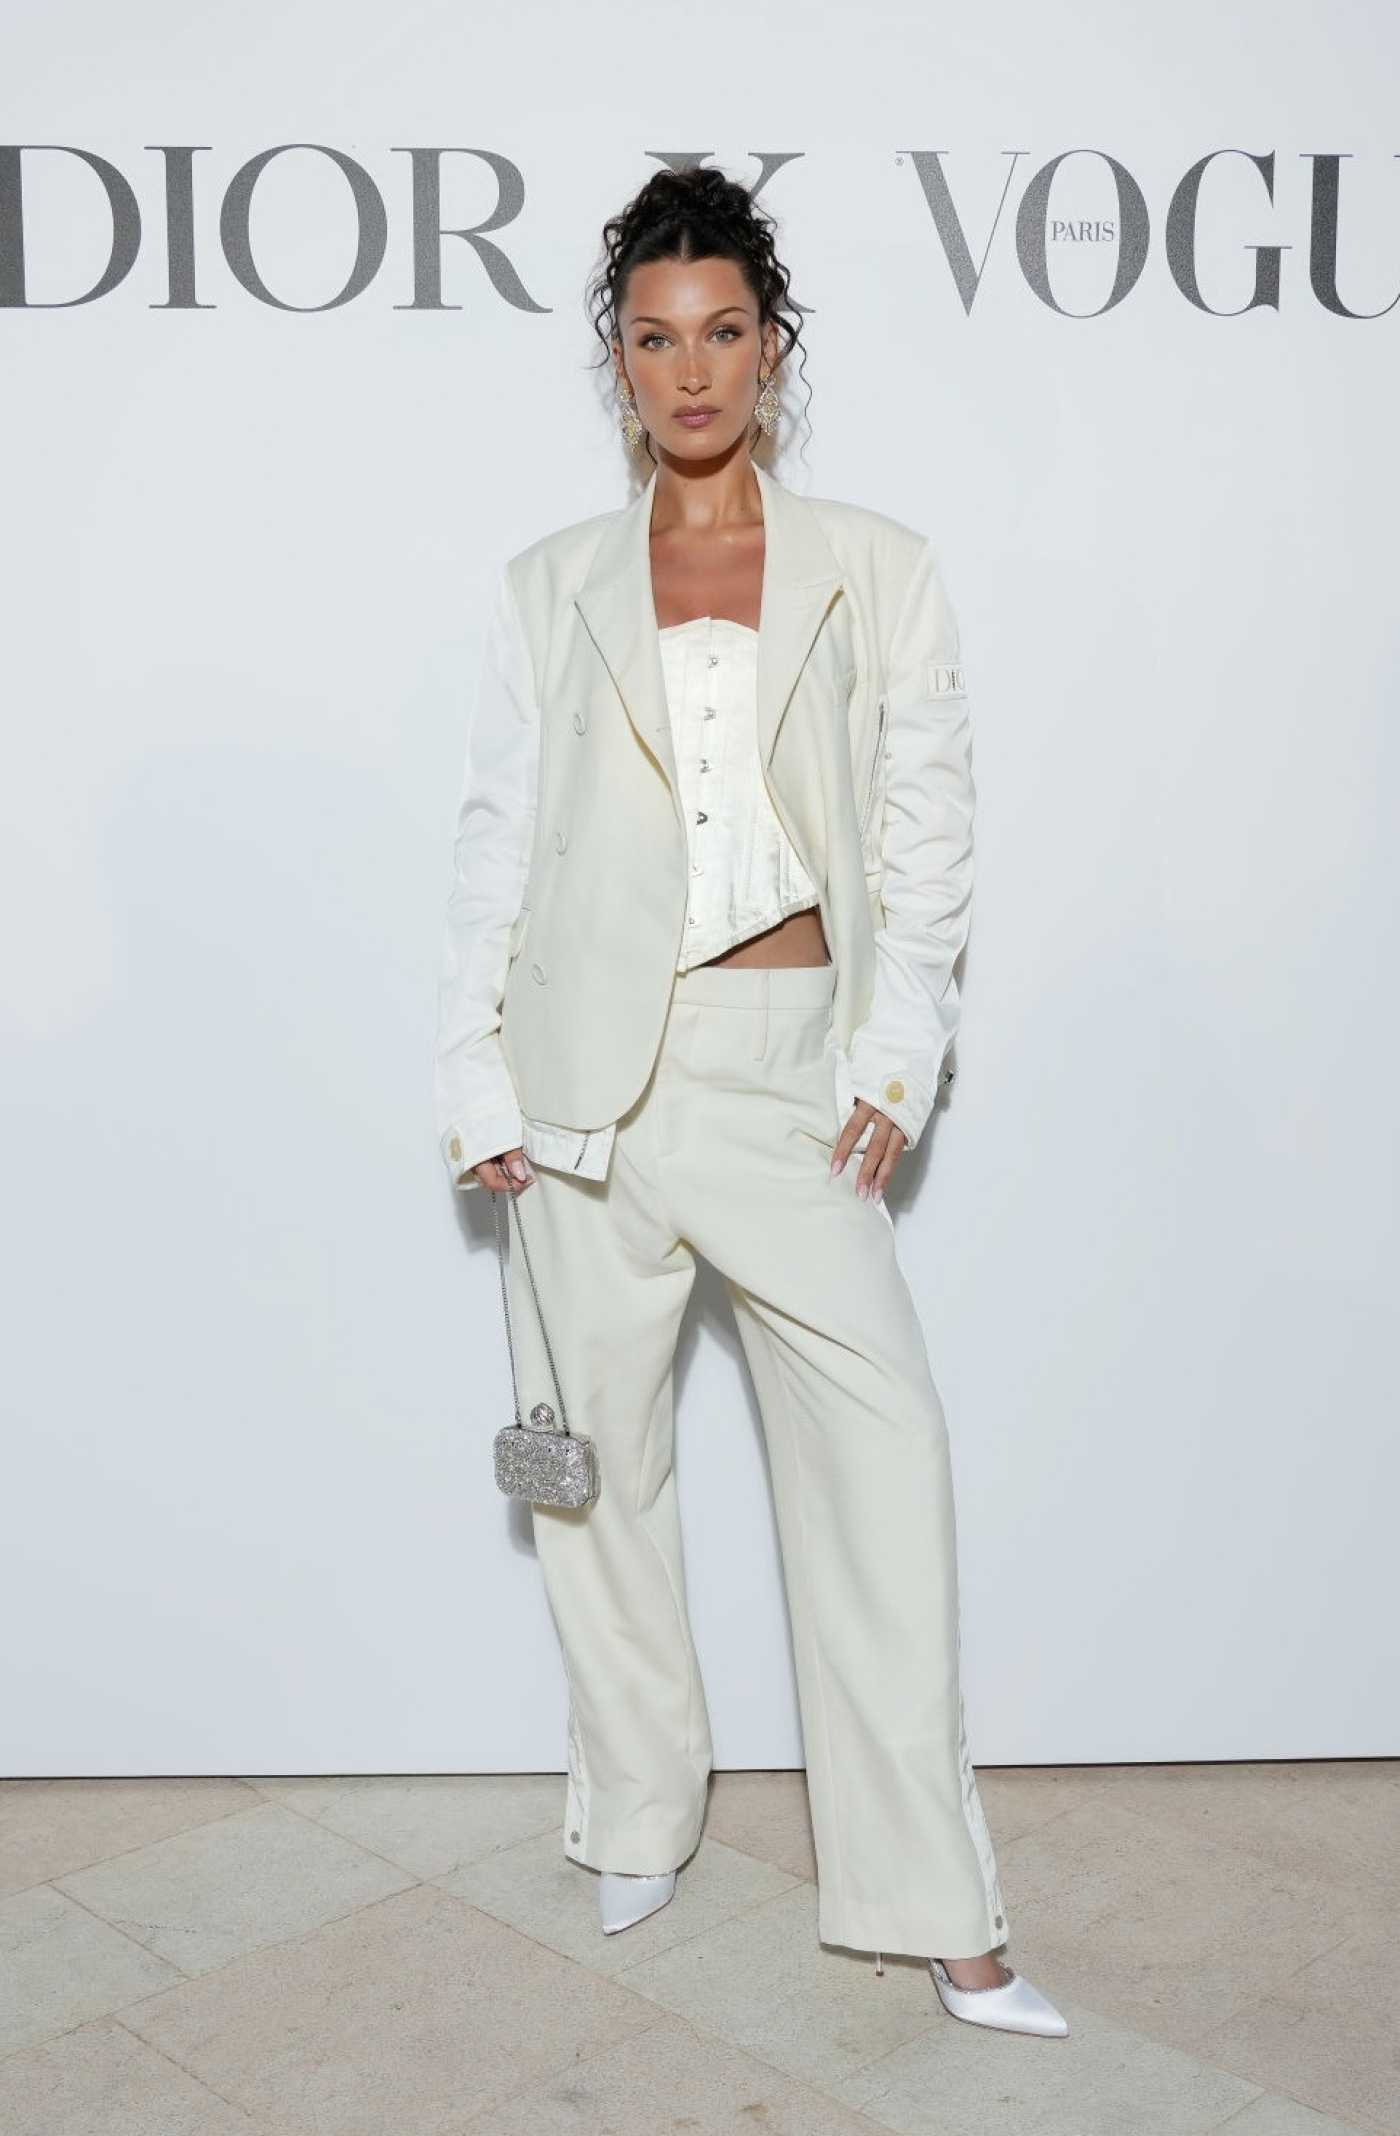 Bella Hadid in a White Suit Attends the Dior Dinner During the 74th Annual Cannes Film Festival in Cannes 07/10/2021